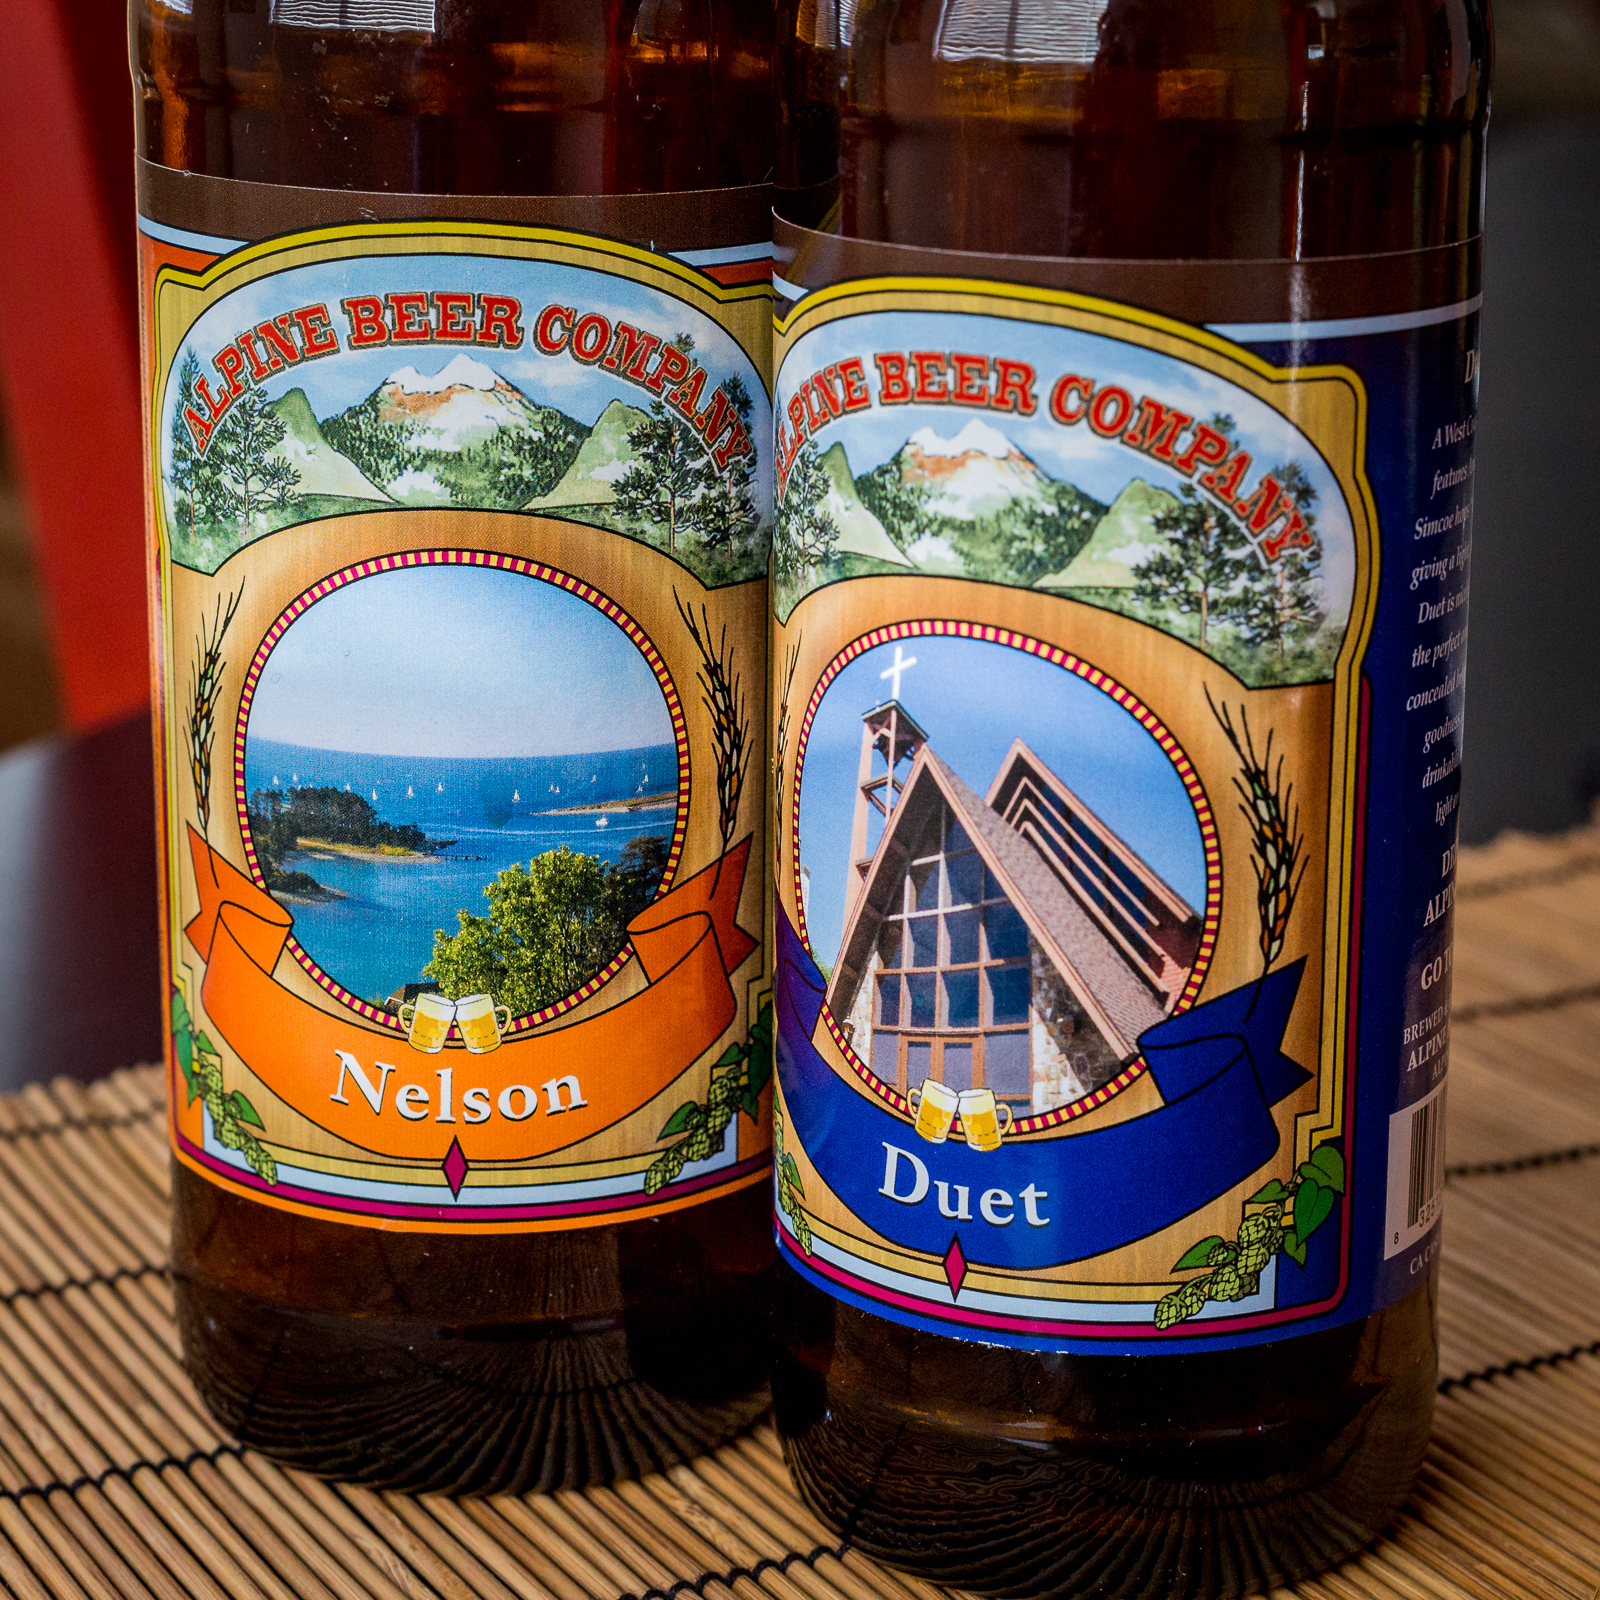 Alpine Beer Company - Nelson and Duet